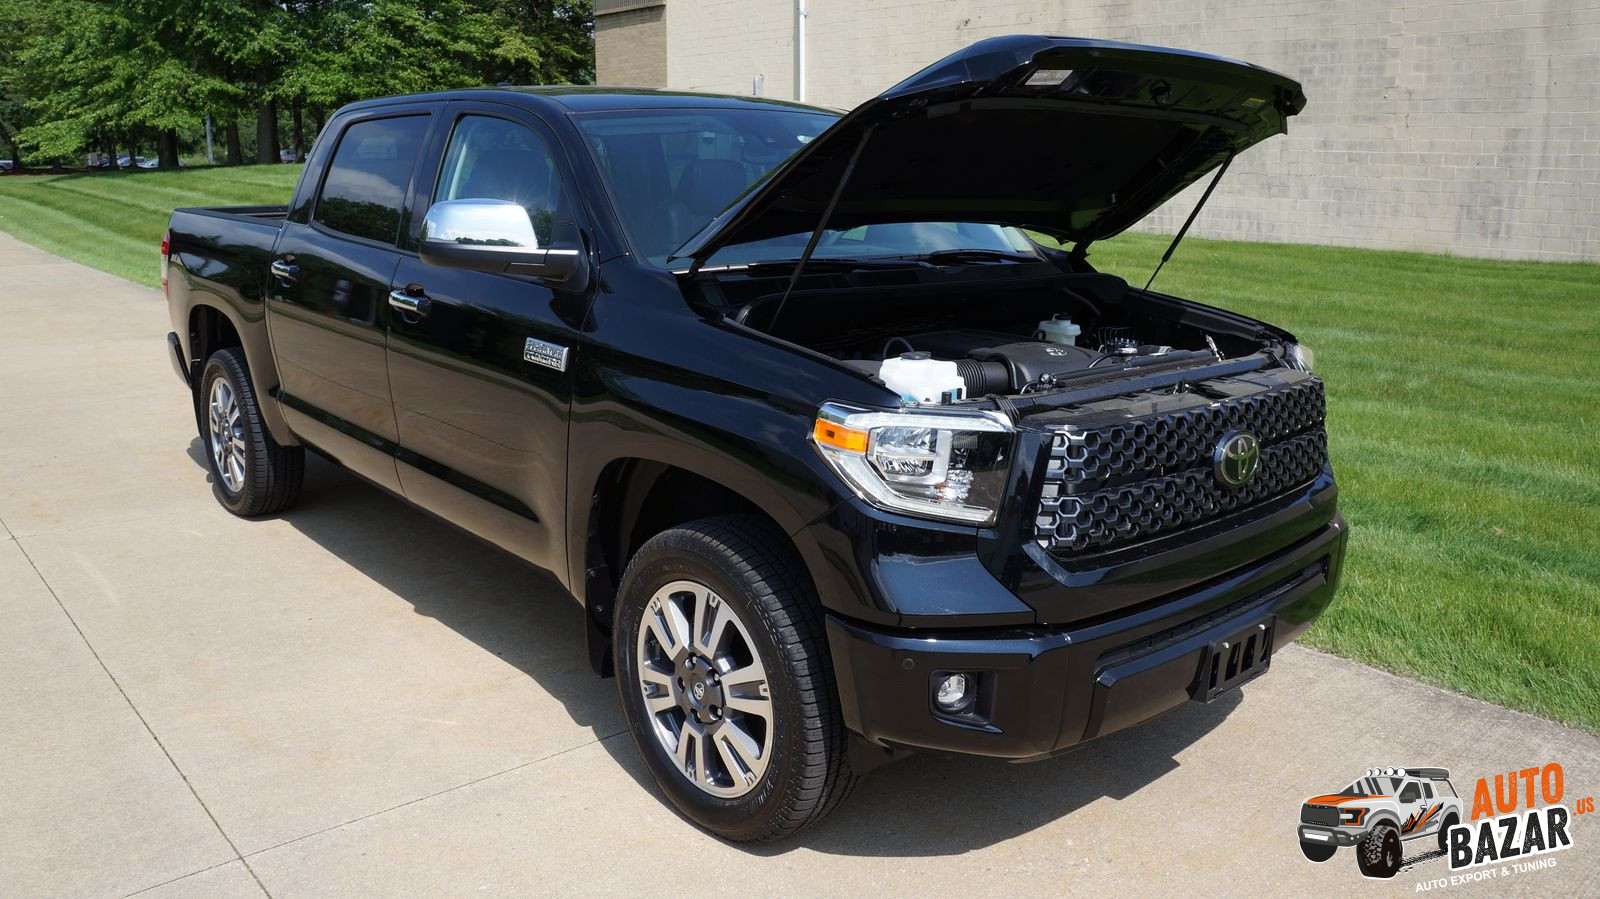 /storage/inventories/1040/1040 2020 Toyota Tundra stock (10).JPG